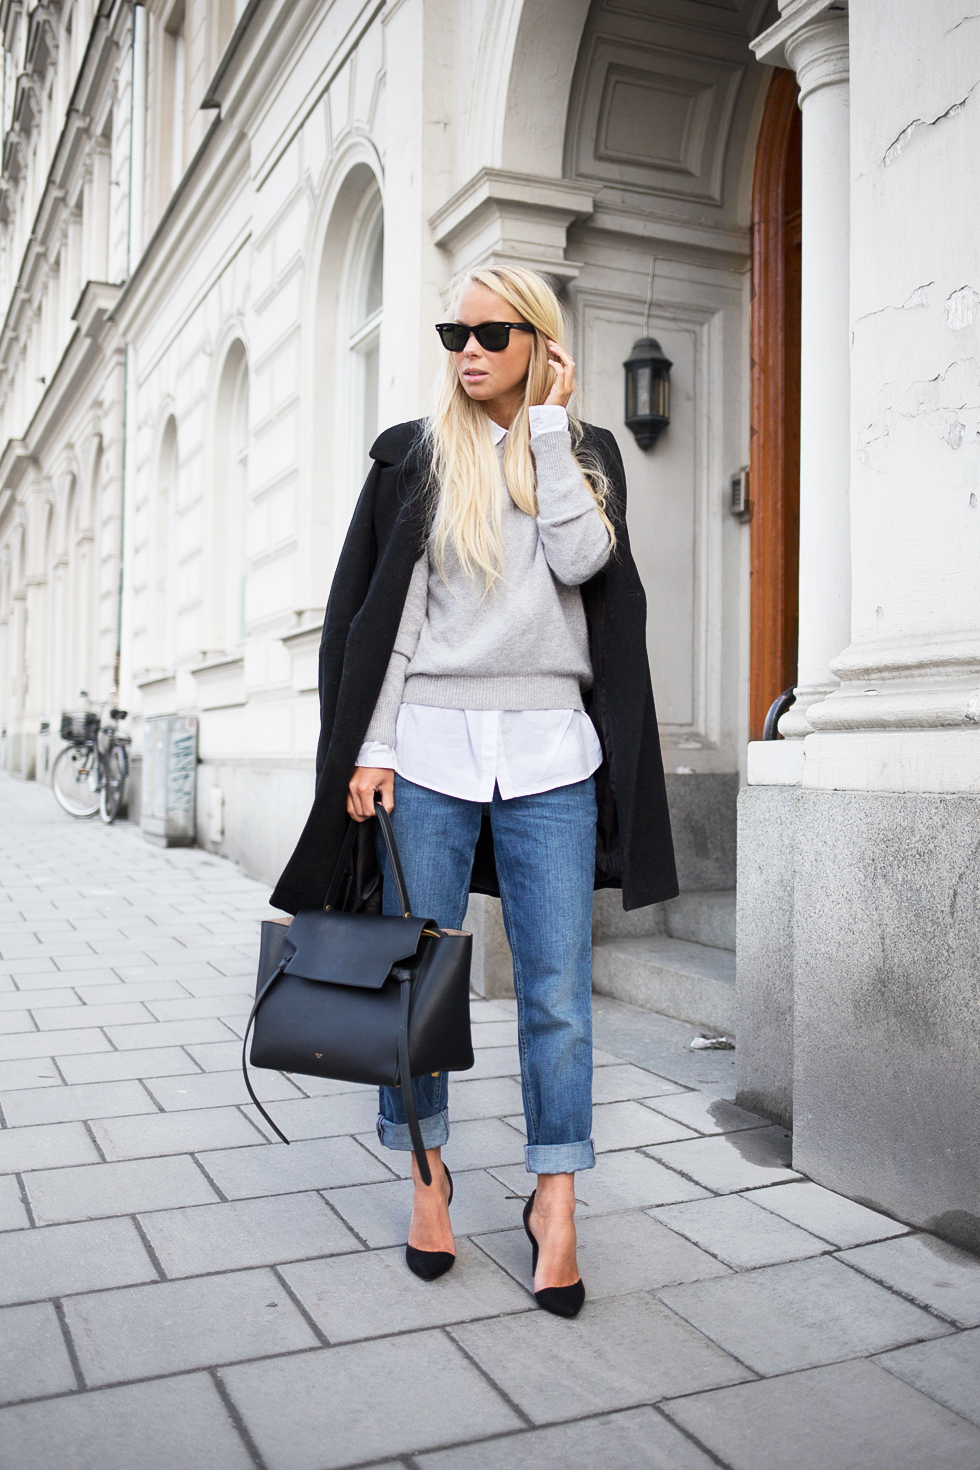 Via Just The Design: Lisa Olsson is wearing a black maxi coat from Asos with pale grey H&M sweater and light wash denim jeans